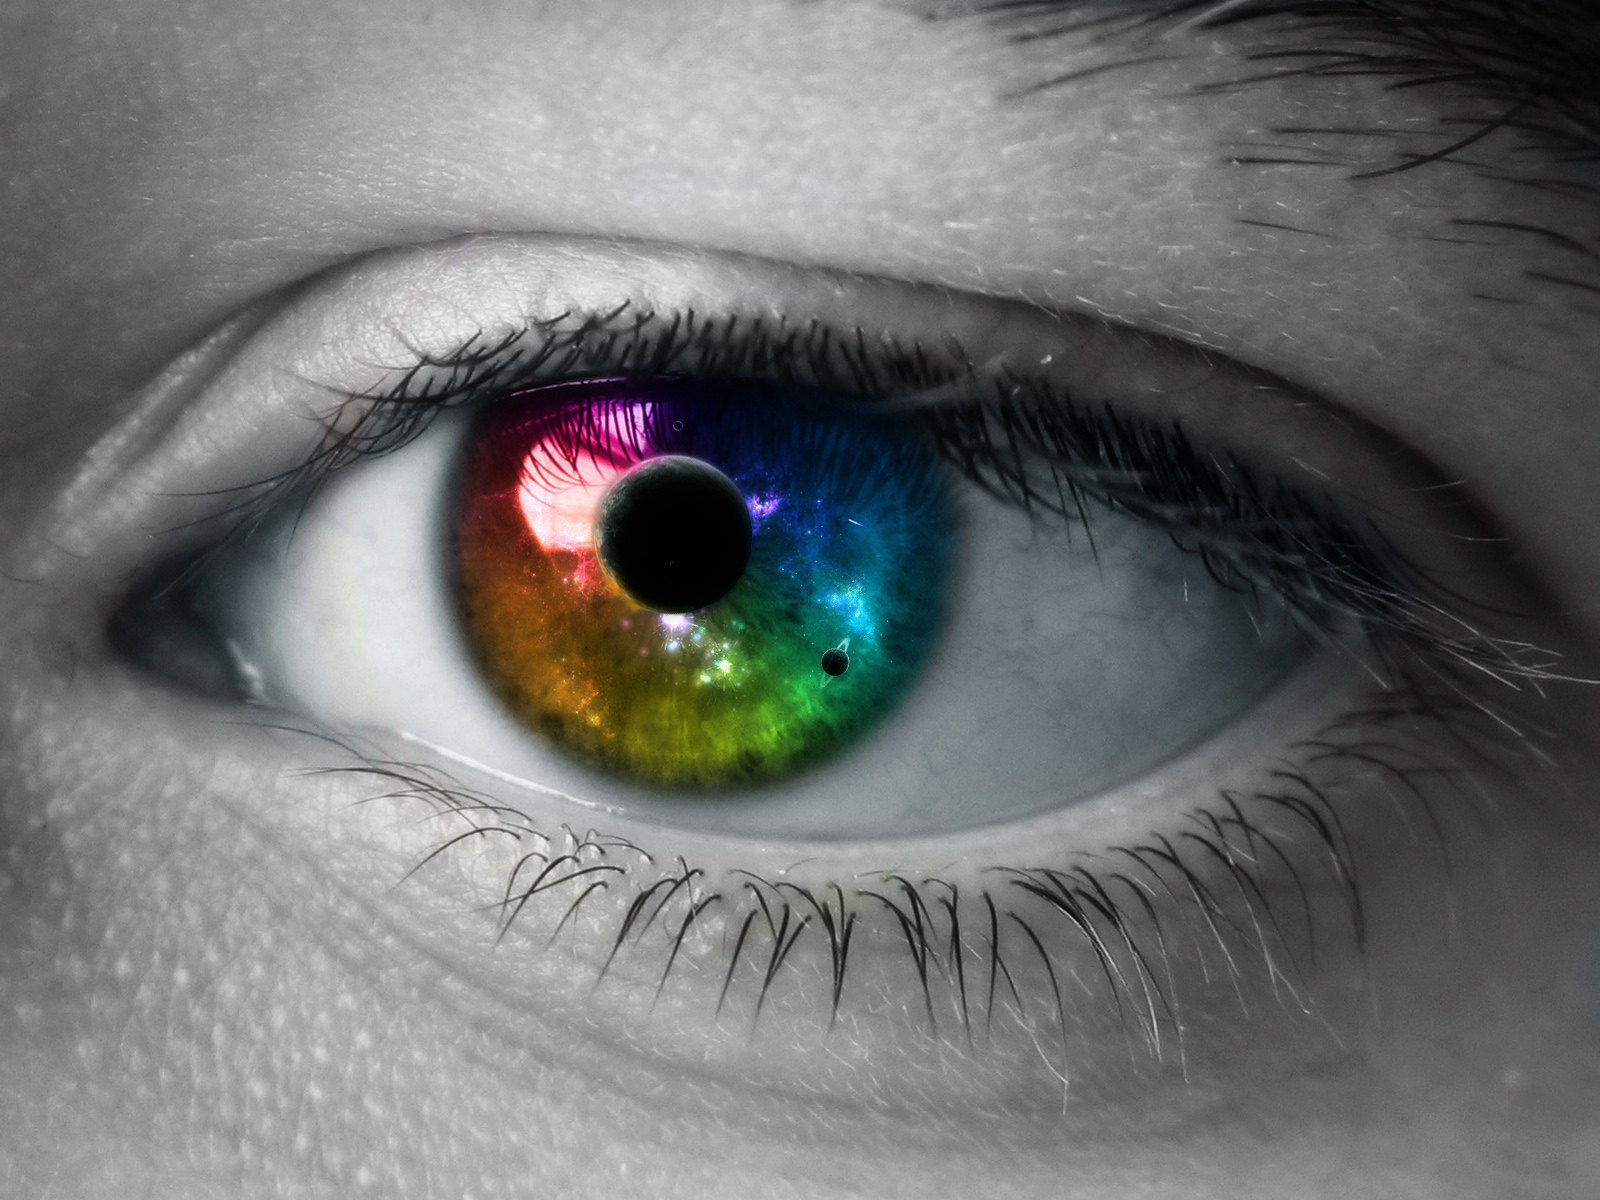 The World in my Eyes